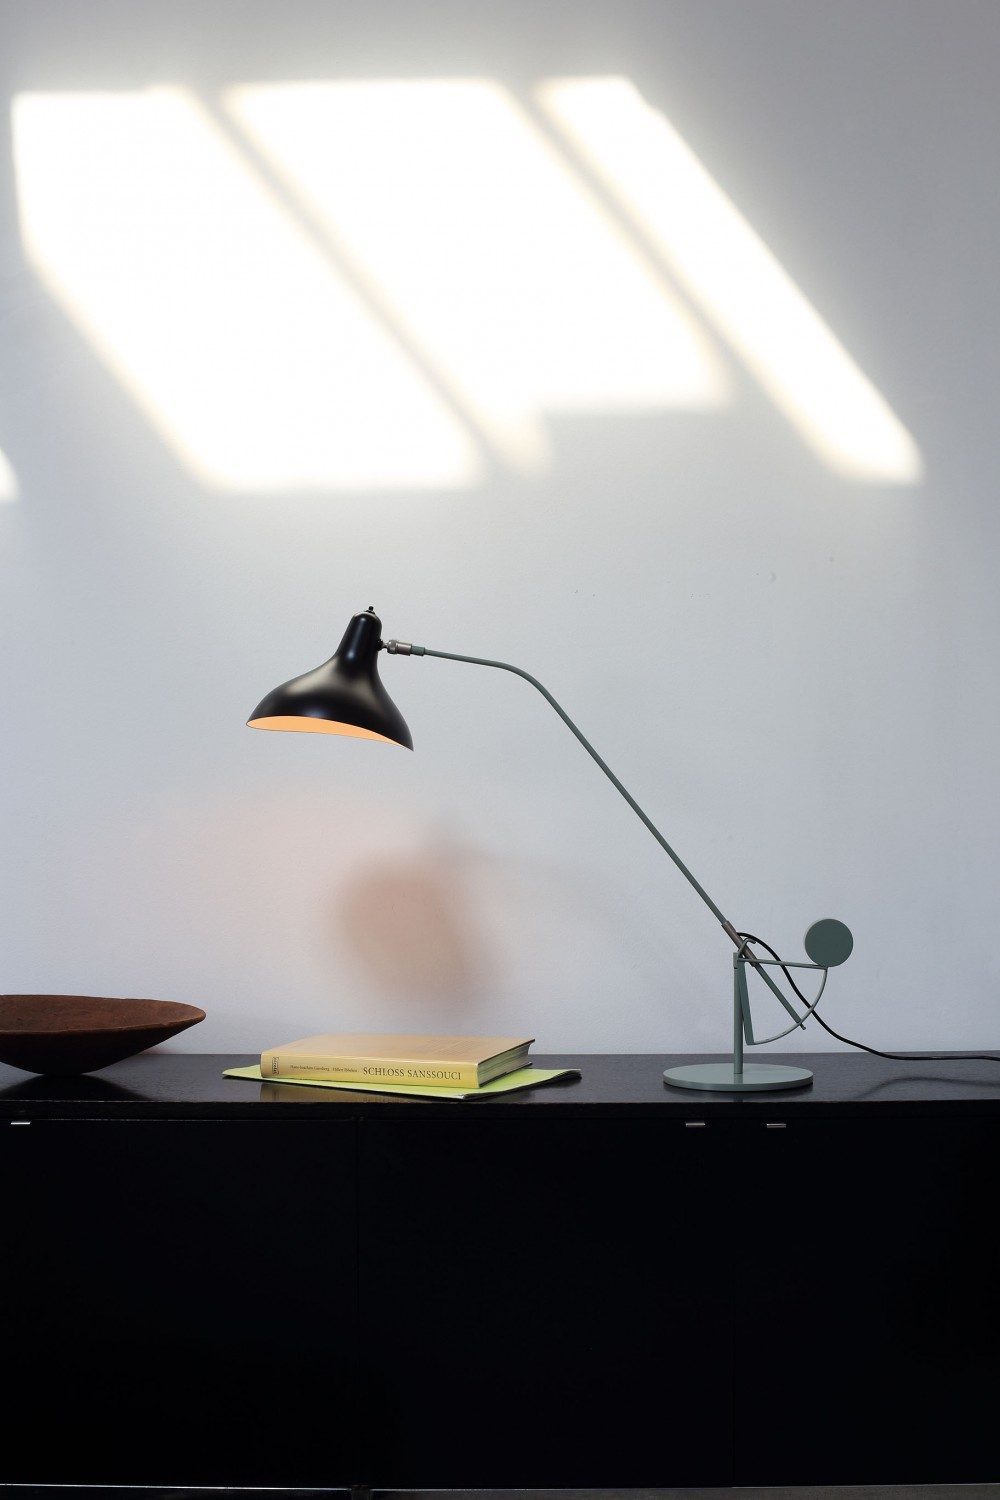 BS3 table lamp by Bernard Schottlander | Quick Dose of Inspiration #43 | Flodeau.com